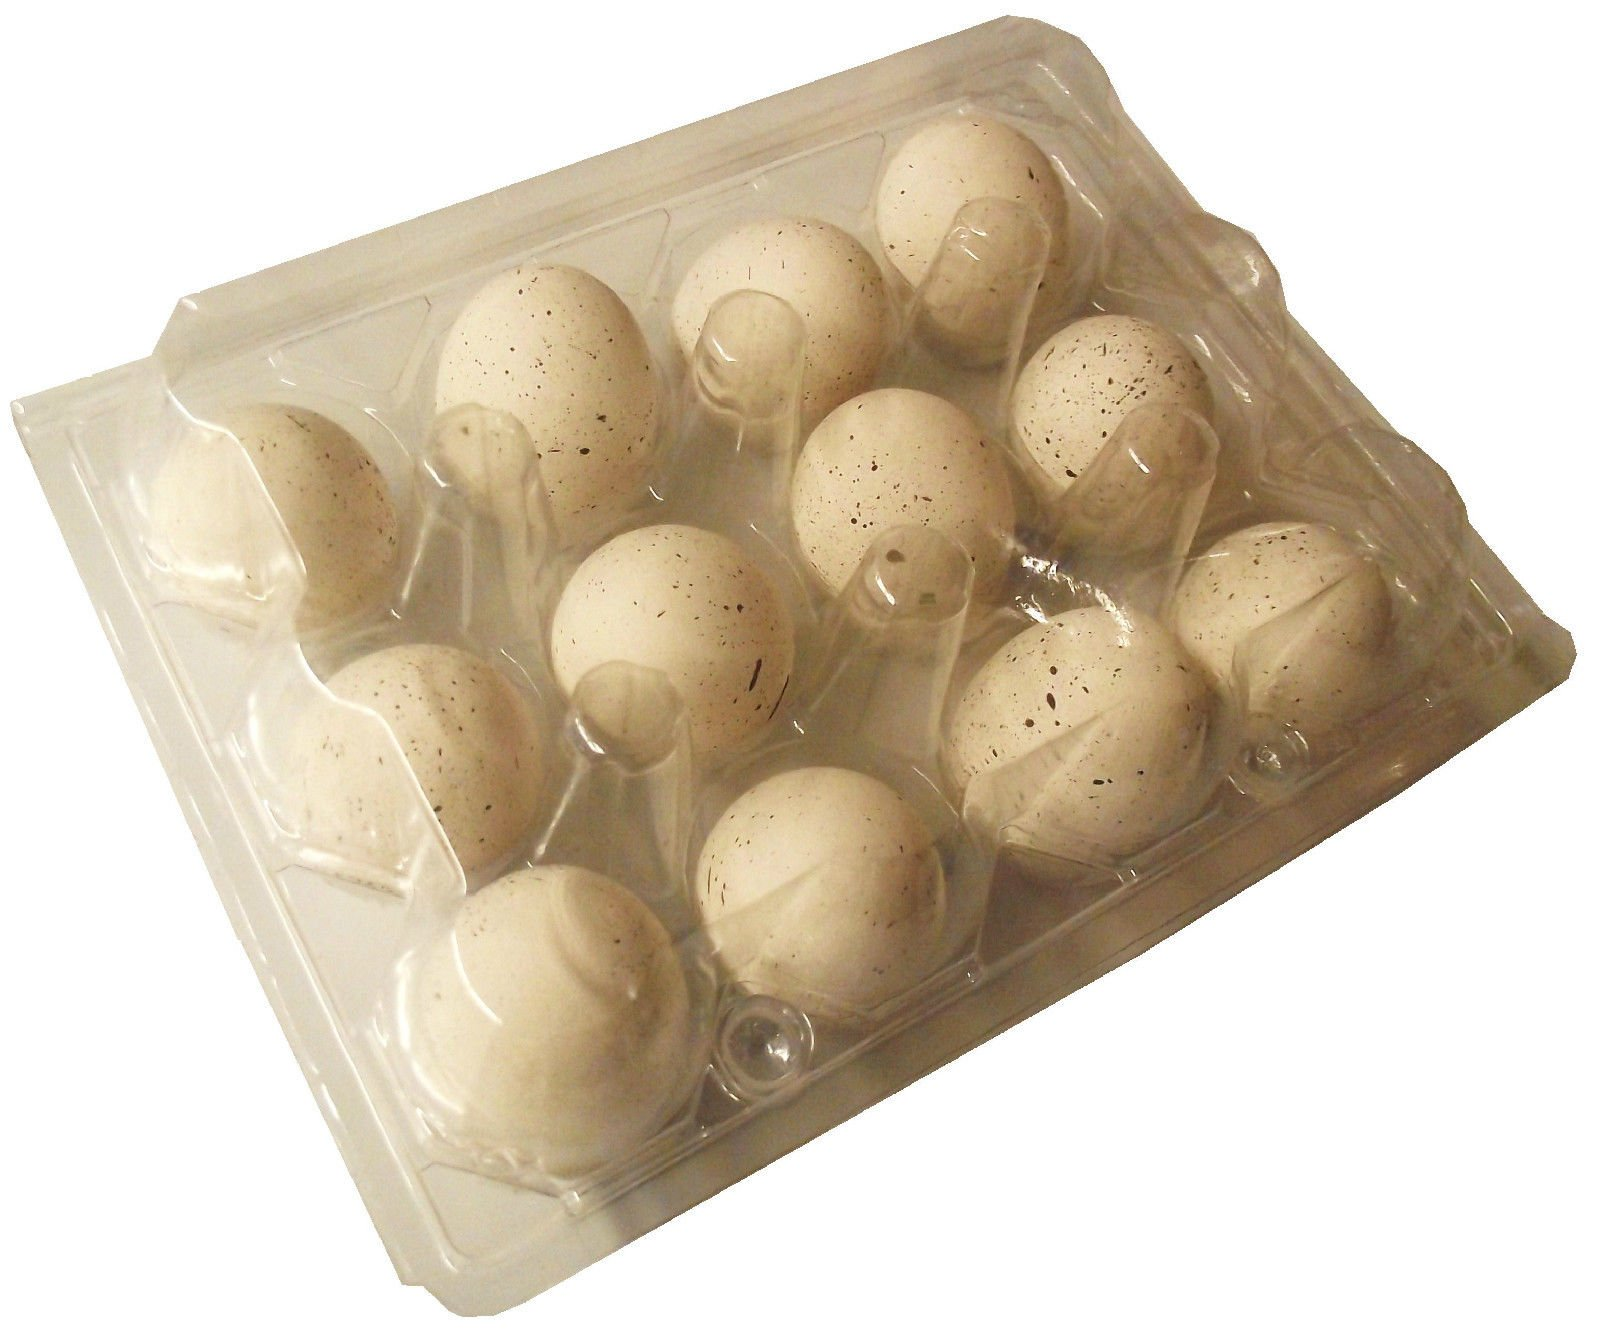 200 PACK RITE FARM PRODUCTS 12 EGG CLEAR POLY QUAIL CARTON TRAY BOBWHITE COTURNIX